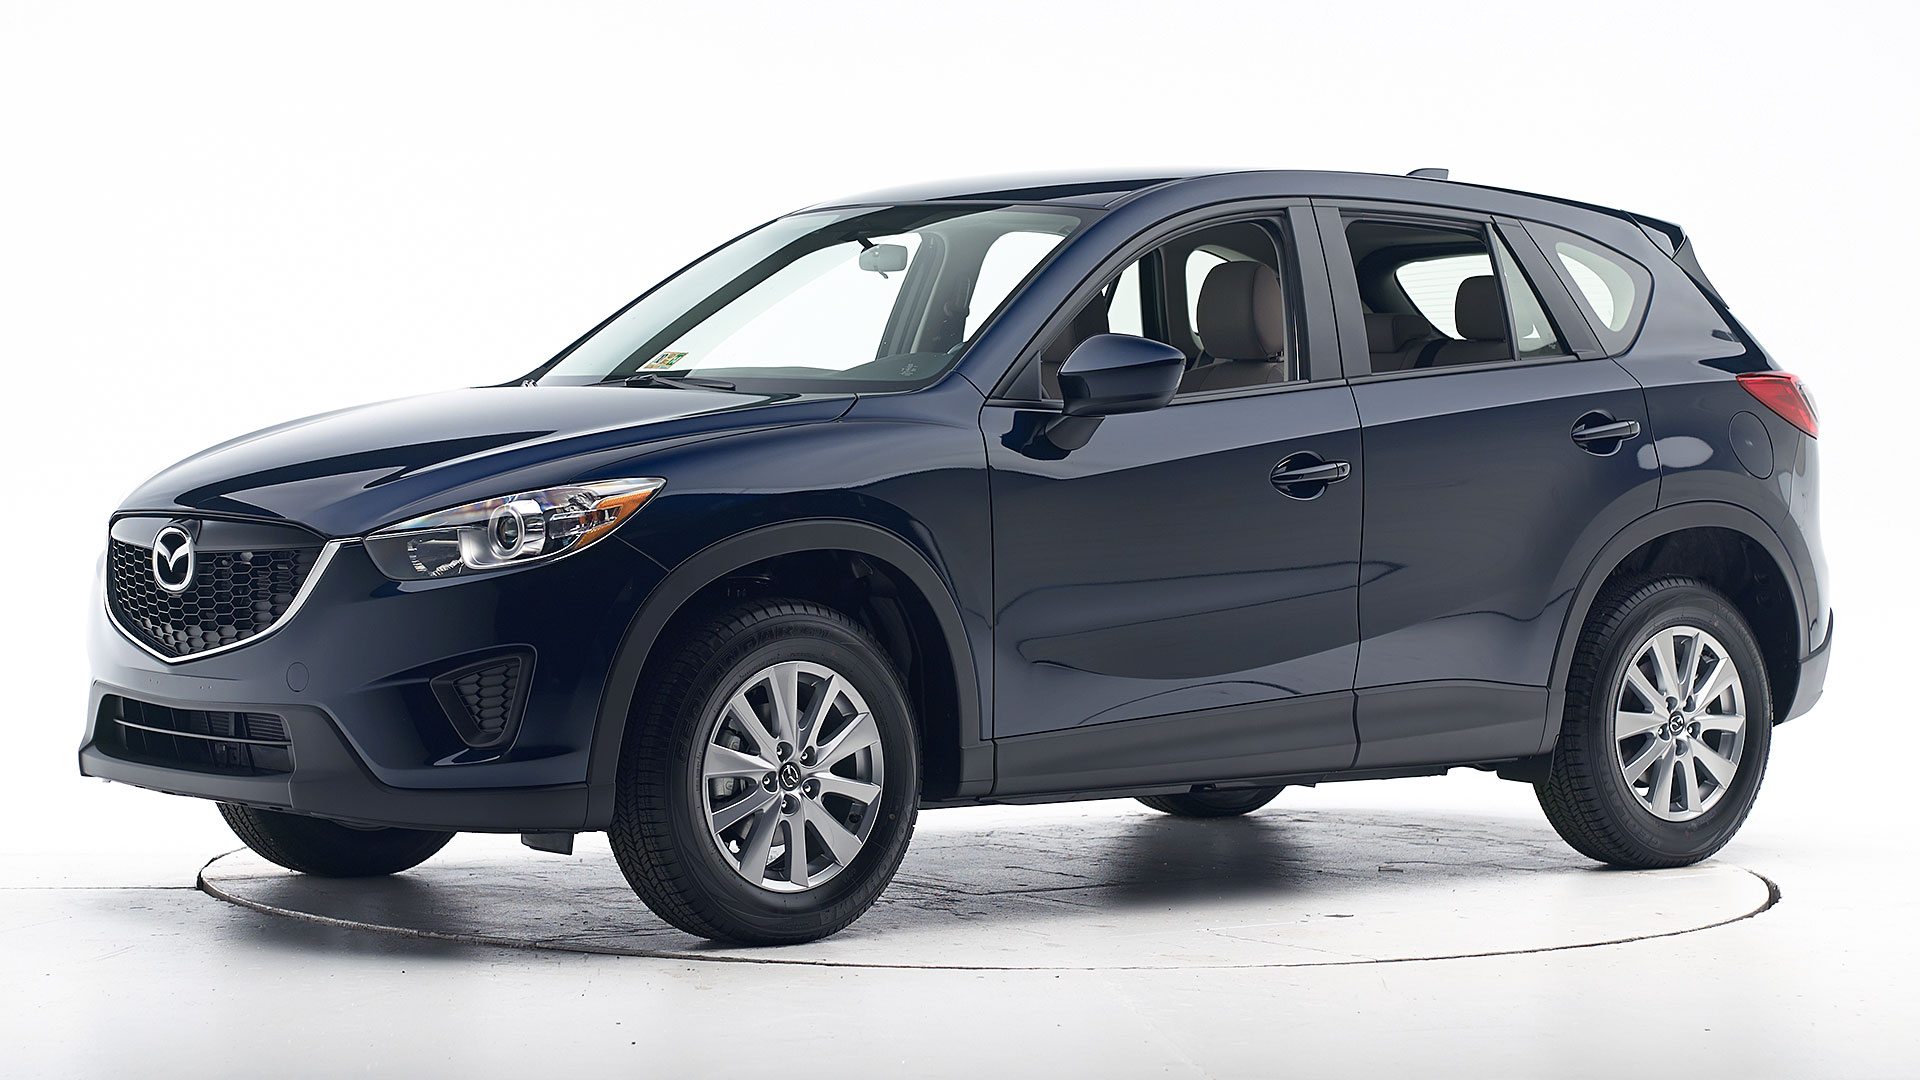 2014 Mazda CX-5 4-door SUV